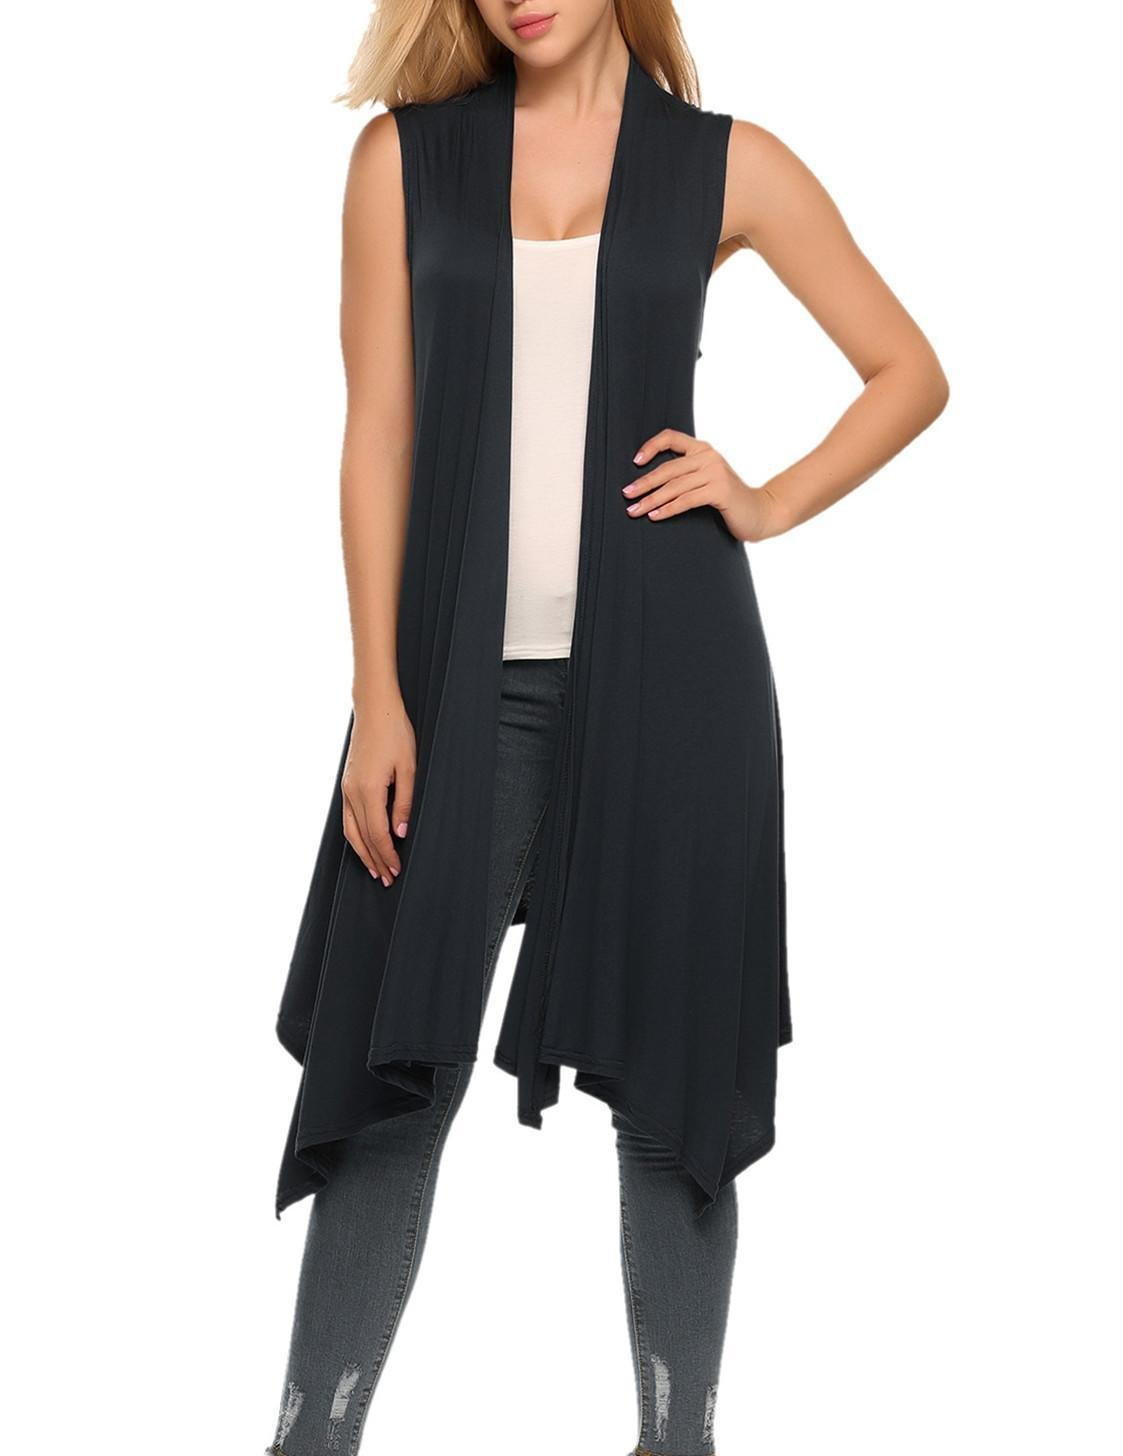 Instom Women's Causal Sleeveless Asymmetric Open Front Draped Cardigan Sweater Vest